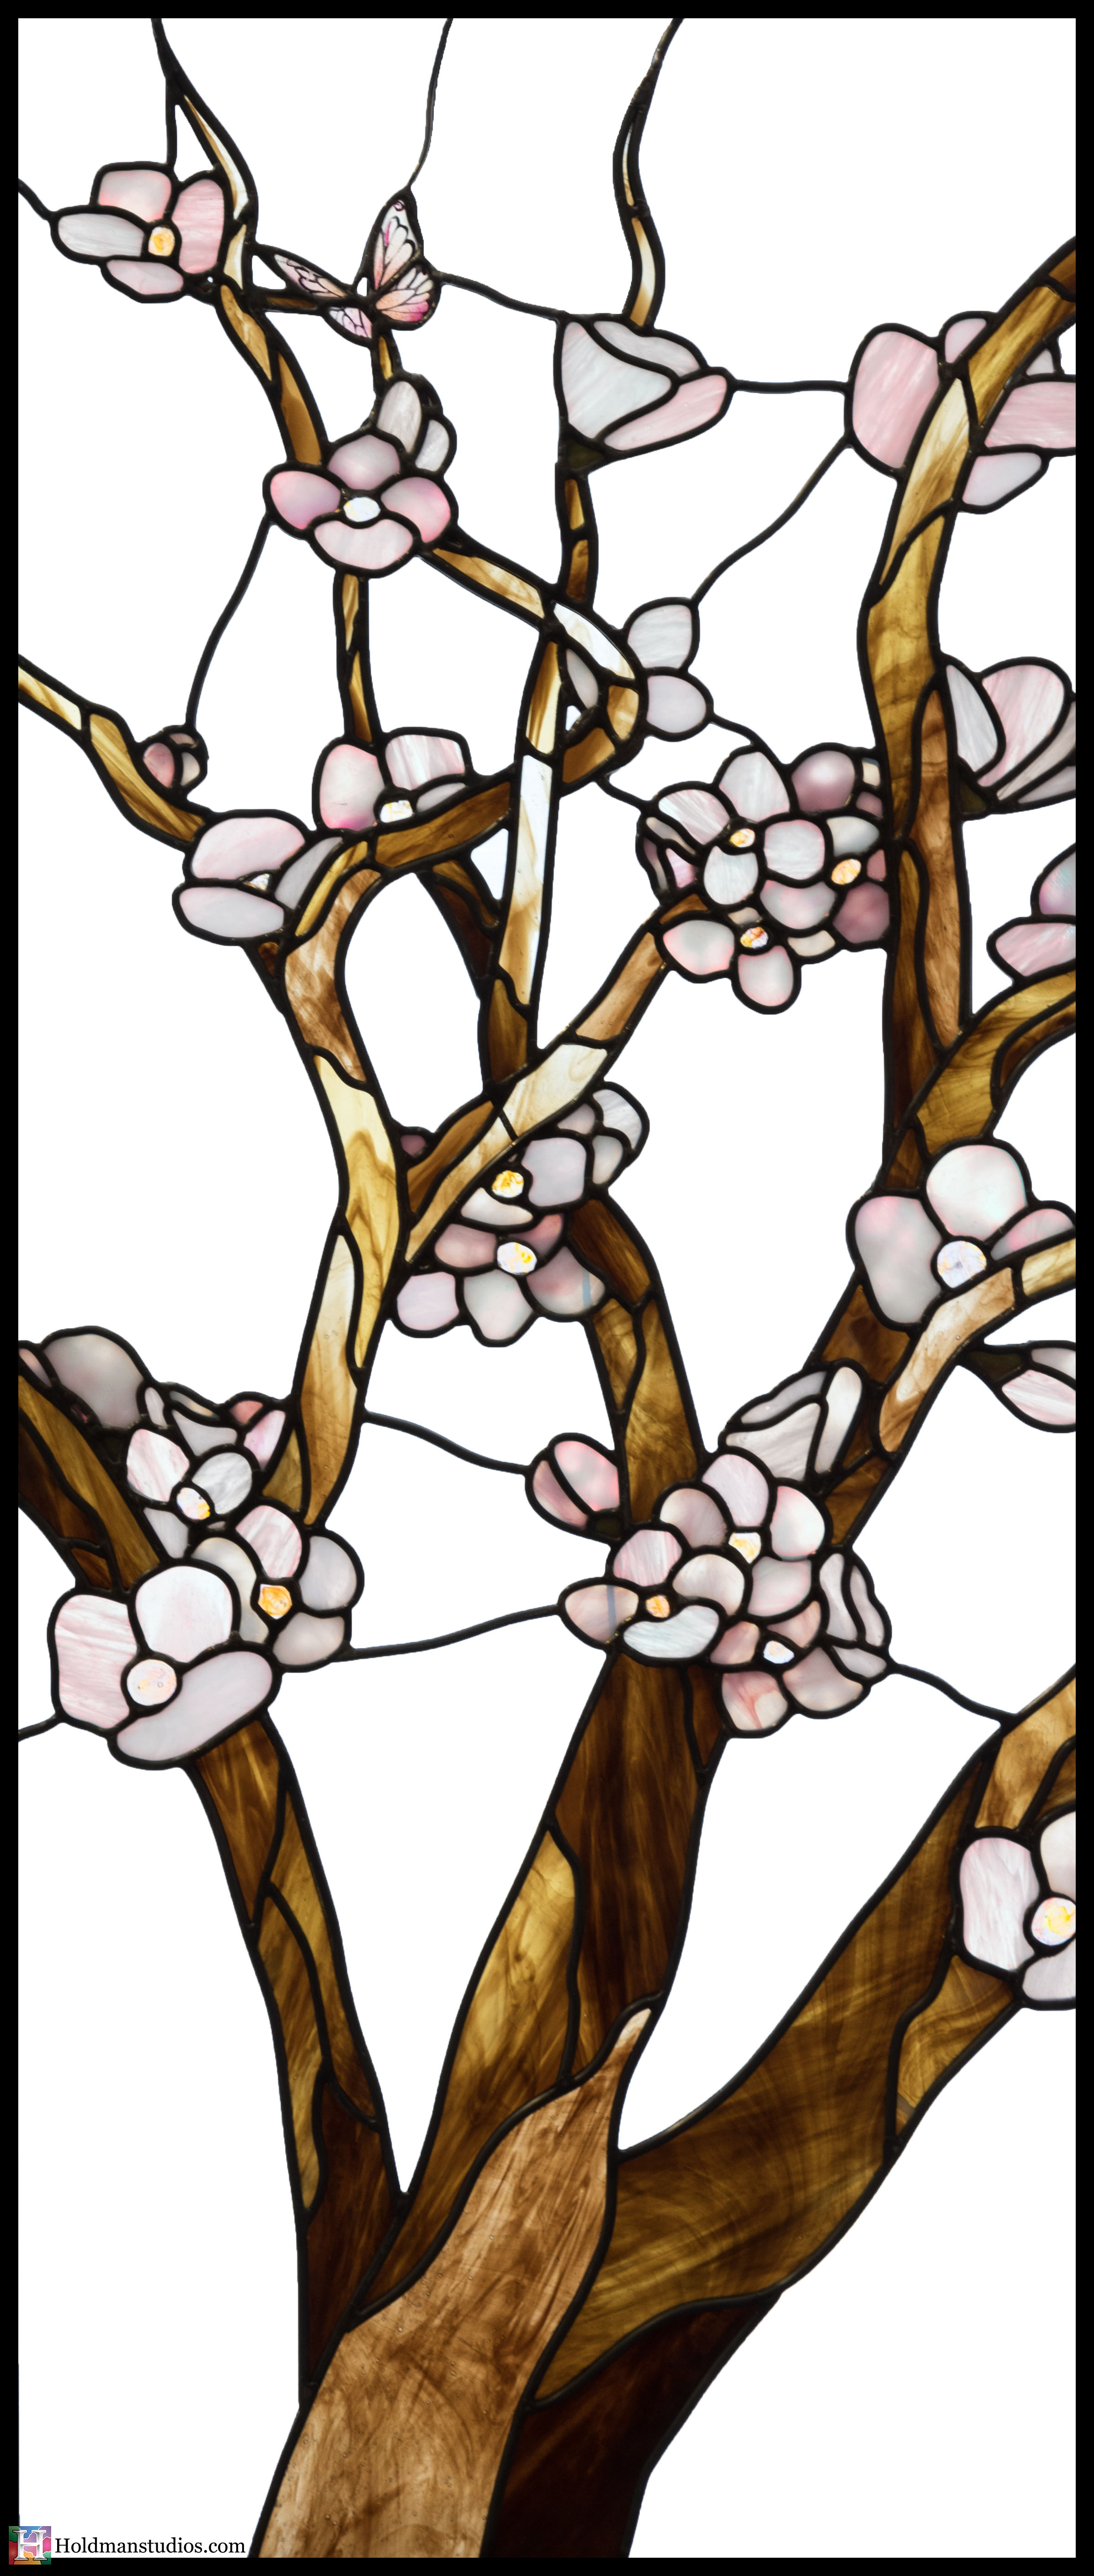 Holdman-Studios-Stained-Glass-Window-Cherry-Tree-Branches-Blossom-Flowers-Butterfly.jpg